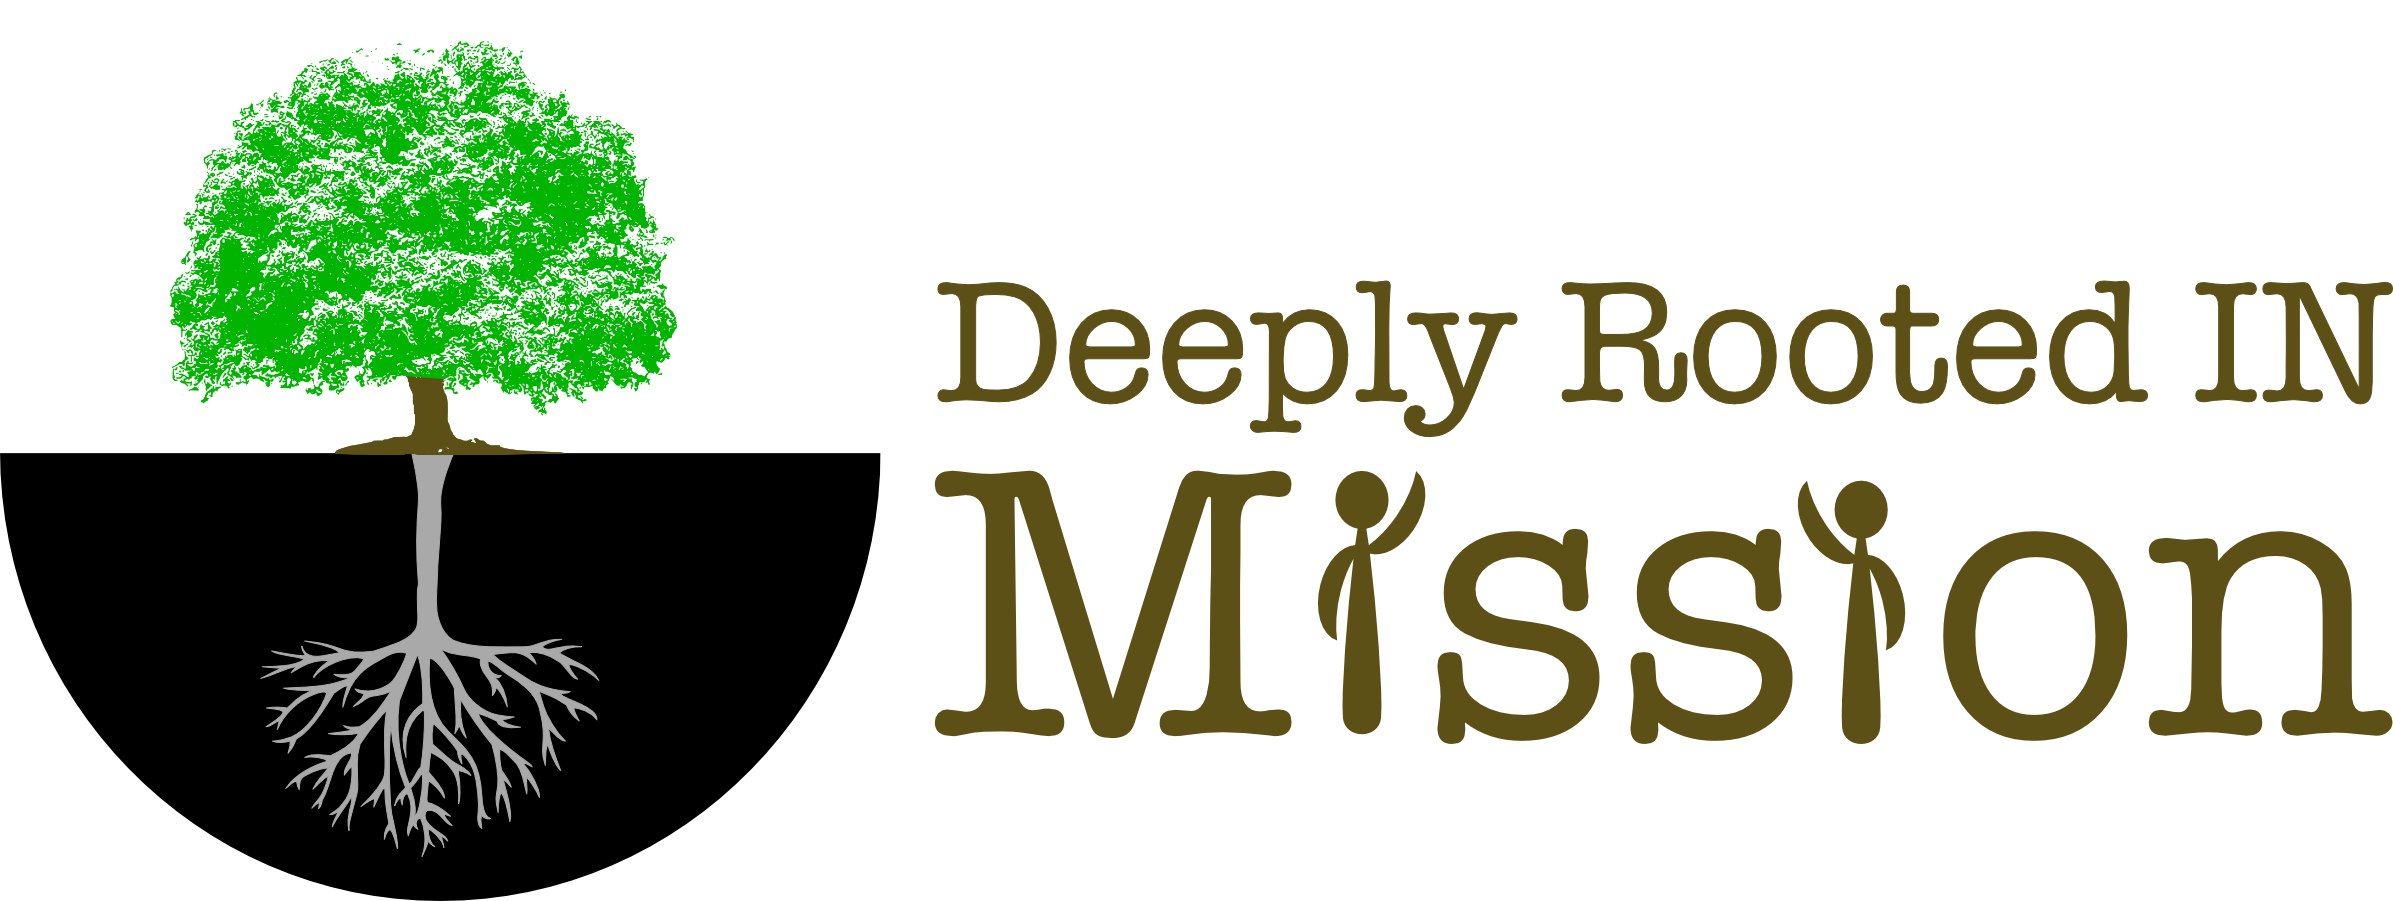 Deeply Rooted in Mission